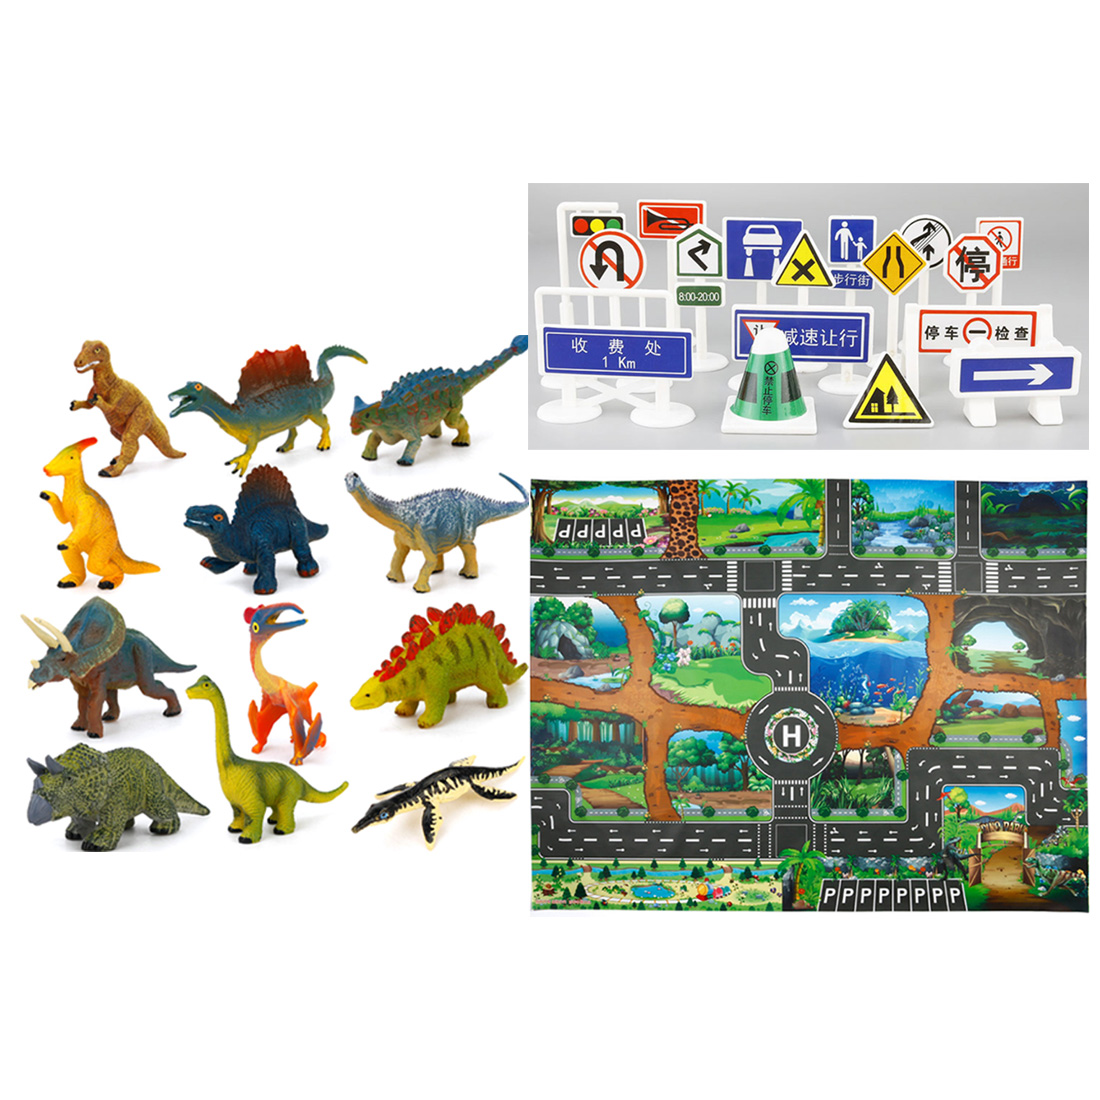 Car Traffic Playing Mat Game Play Carpet Roadway Activity Rug With Traffic Markers And Pack Of 12 Dinosaurs Educational Toy Gift